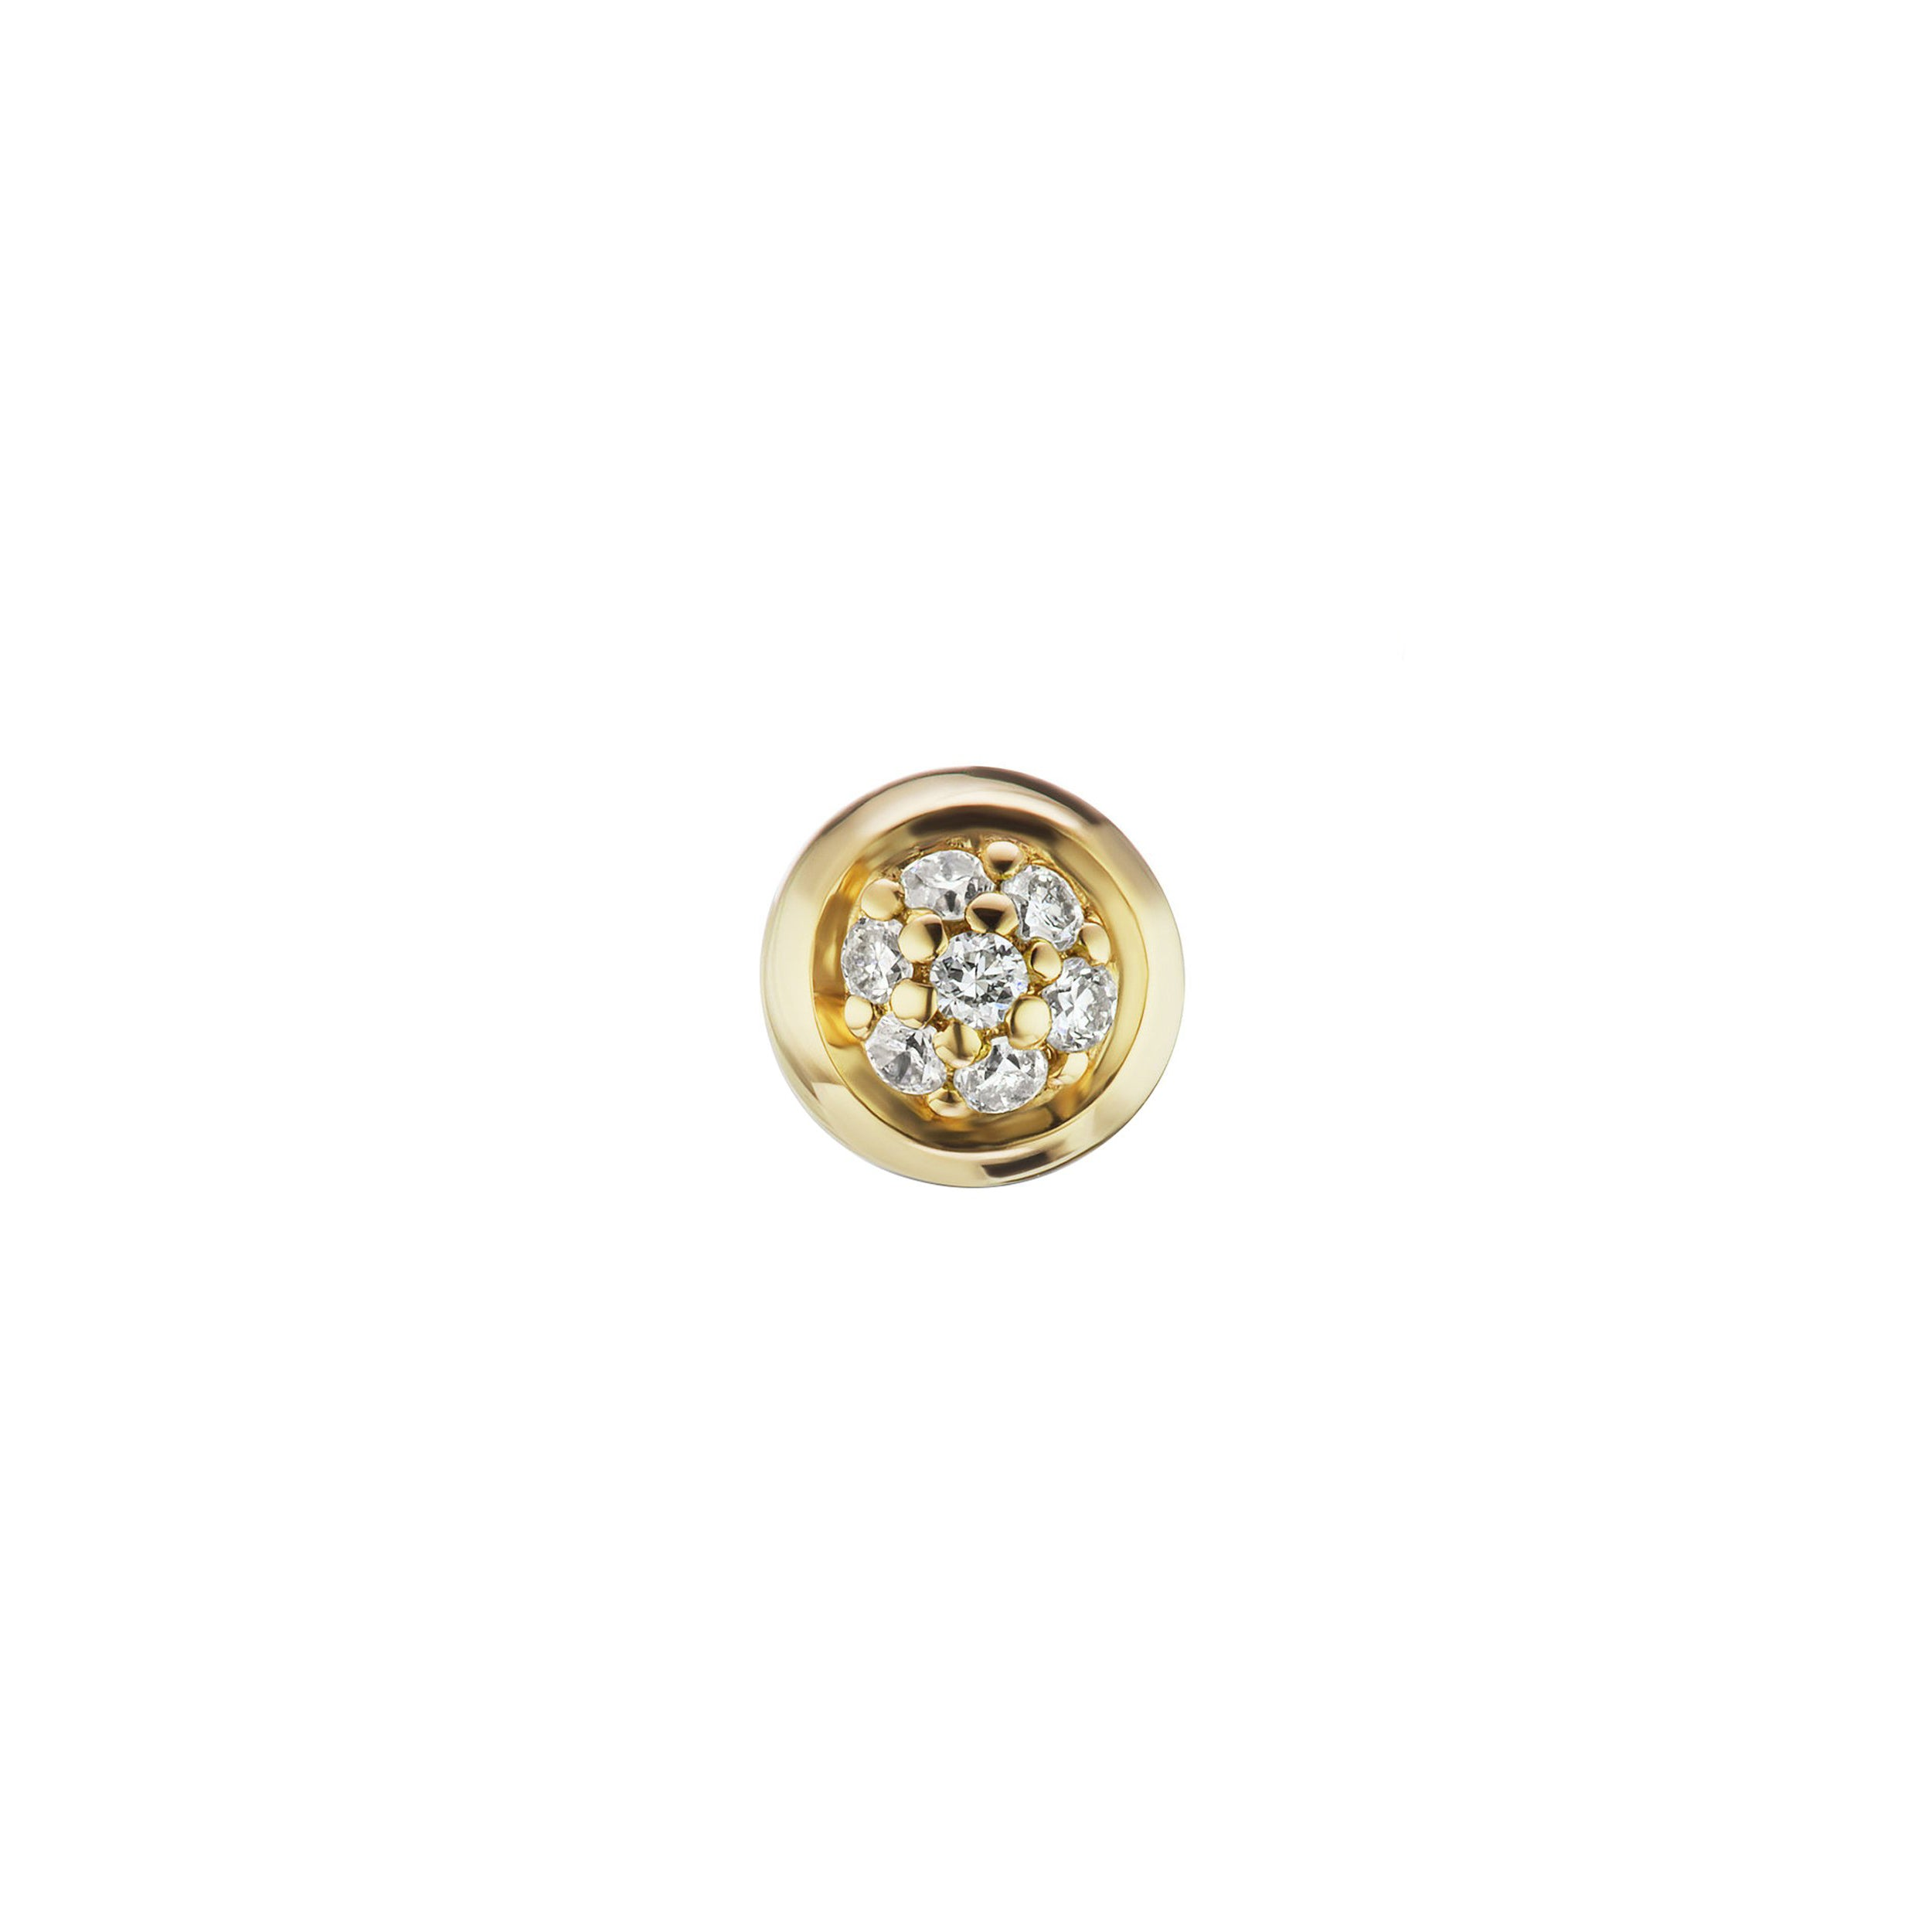 Altruist Pave Screw Stud 4mm - Gold - Earrings - Broken English Jewelry